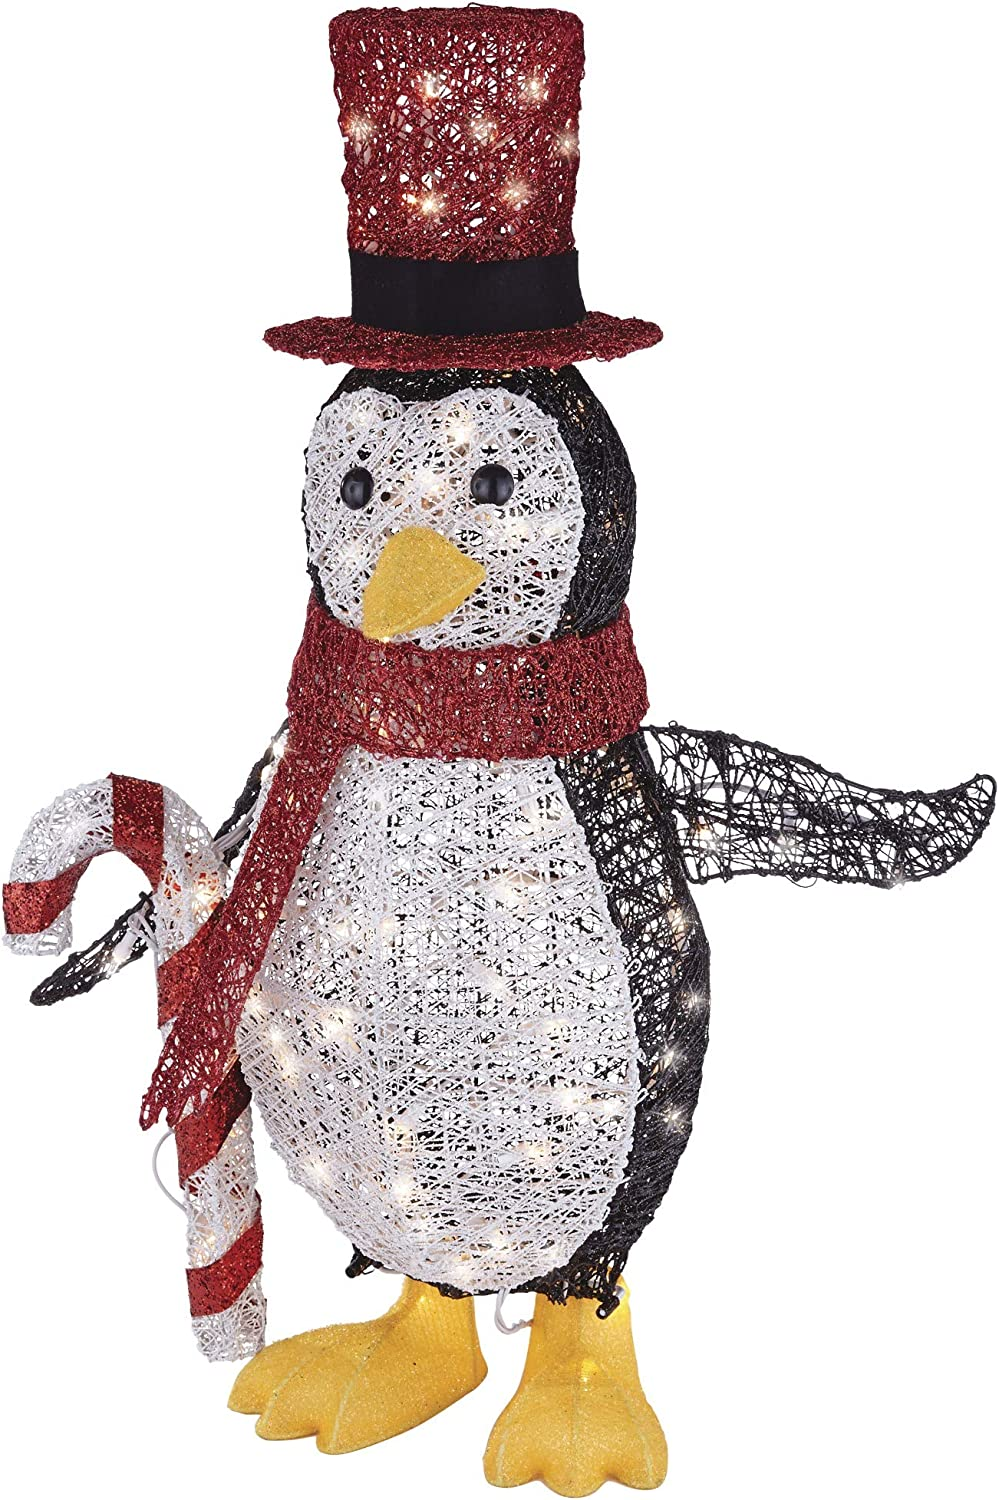 NOMA Pre-Lit Light Up Incandescent Penguin with Red Top Hat | Outdoor Christmas Lawn Decoration | 2.75 ft